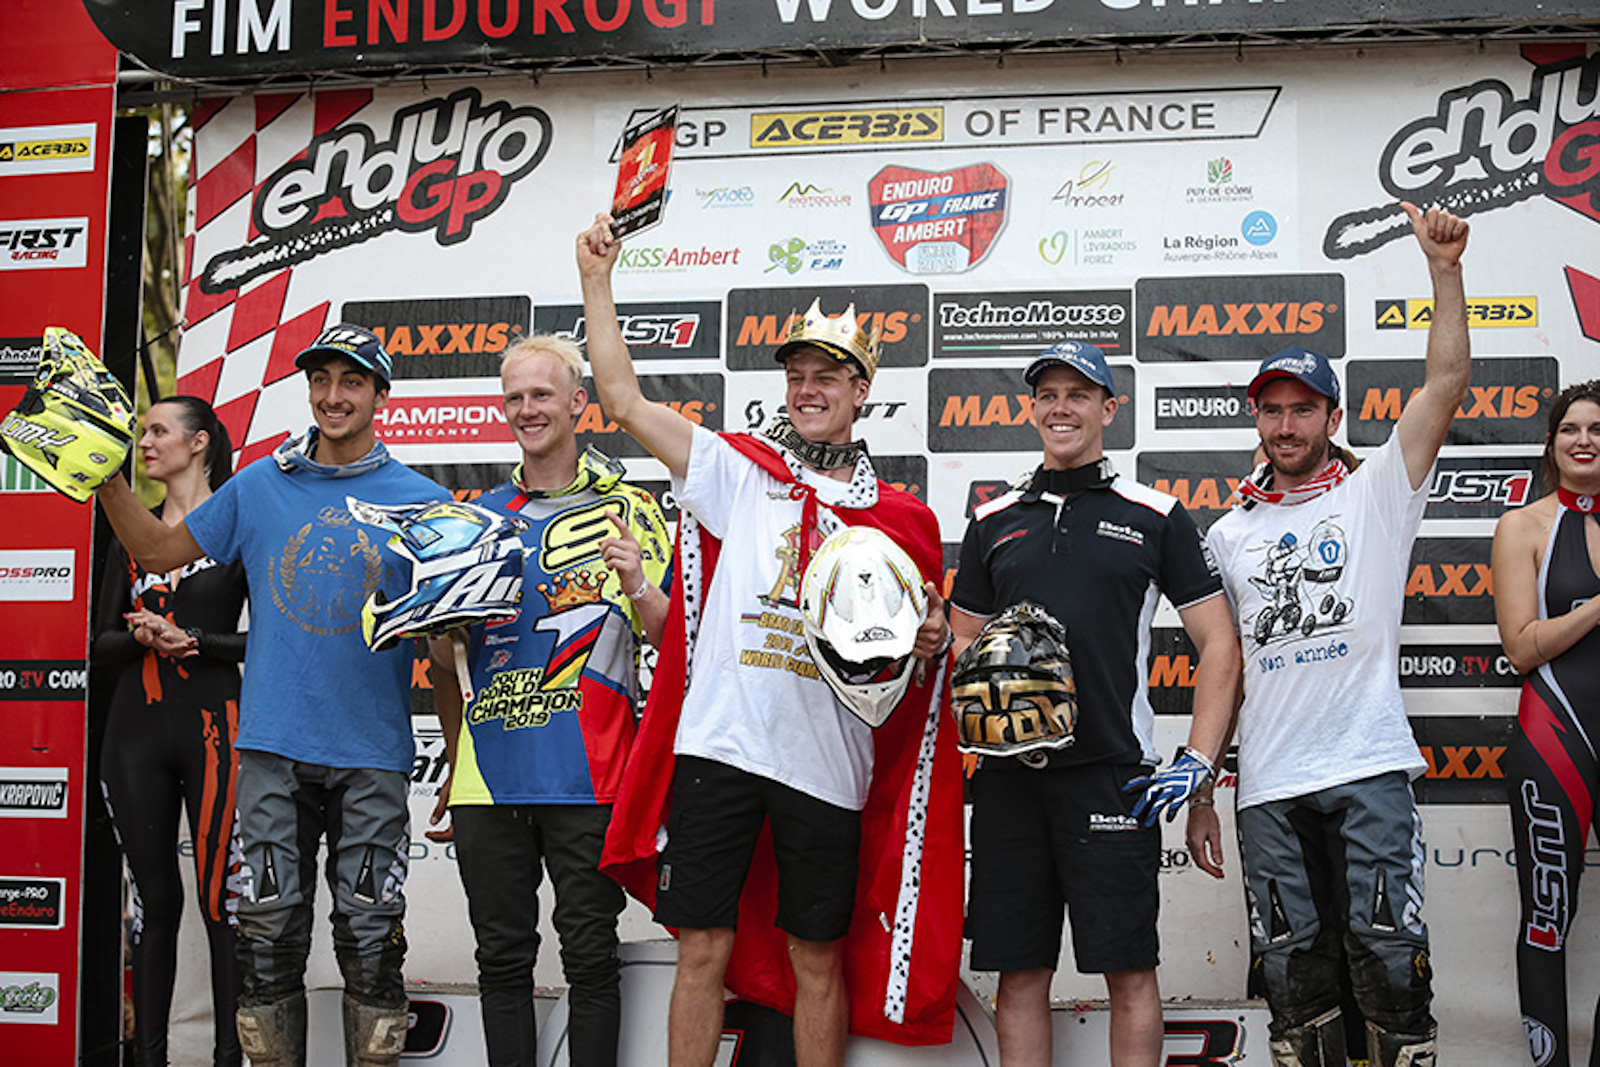 EnduroGP 2019: 5 things we learned from the final GP of 2019 in France